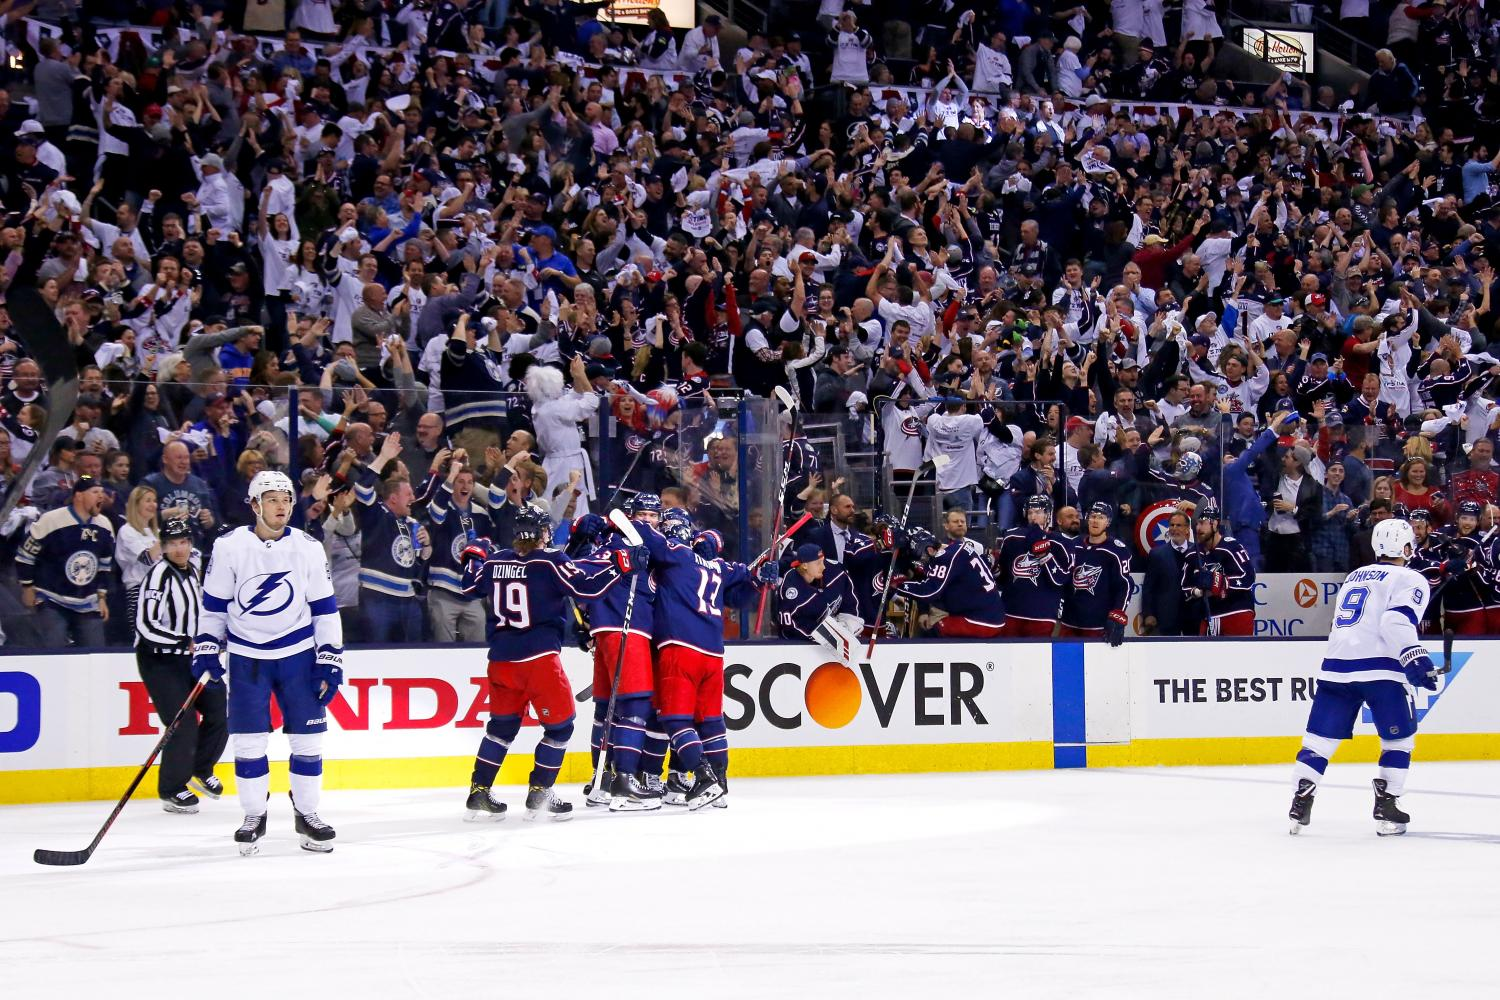 Thrilling First Round Leaves NHL Viewers Amped for Round Two